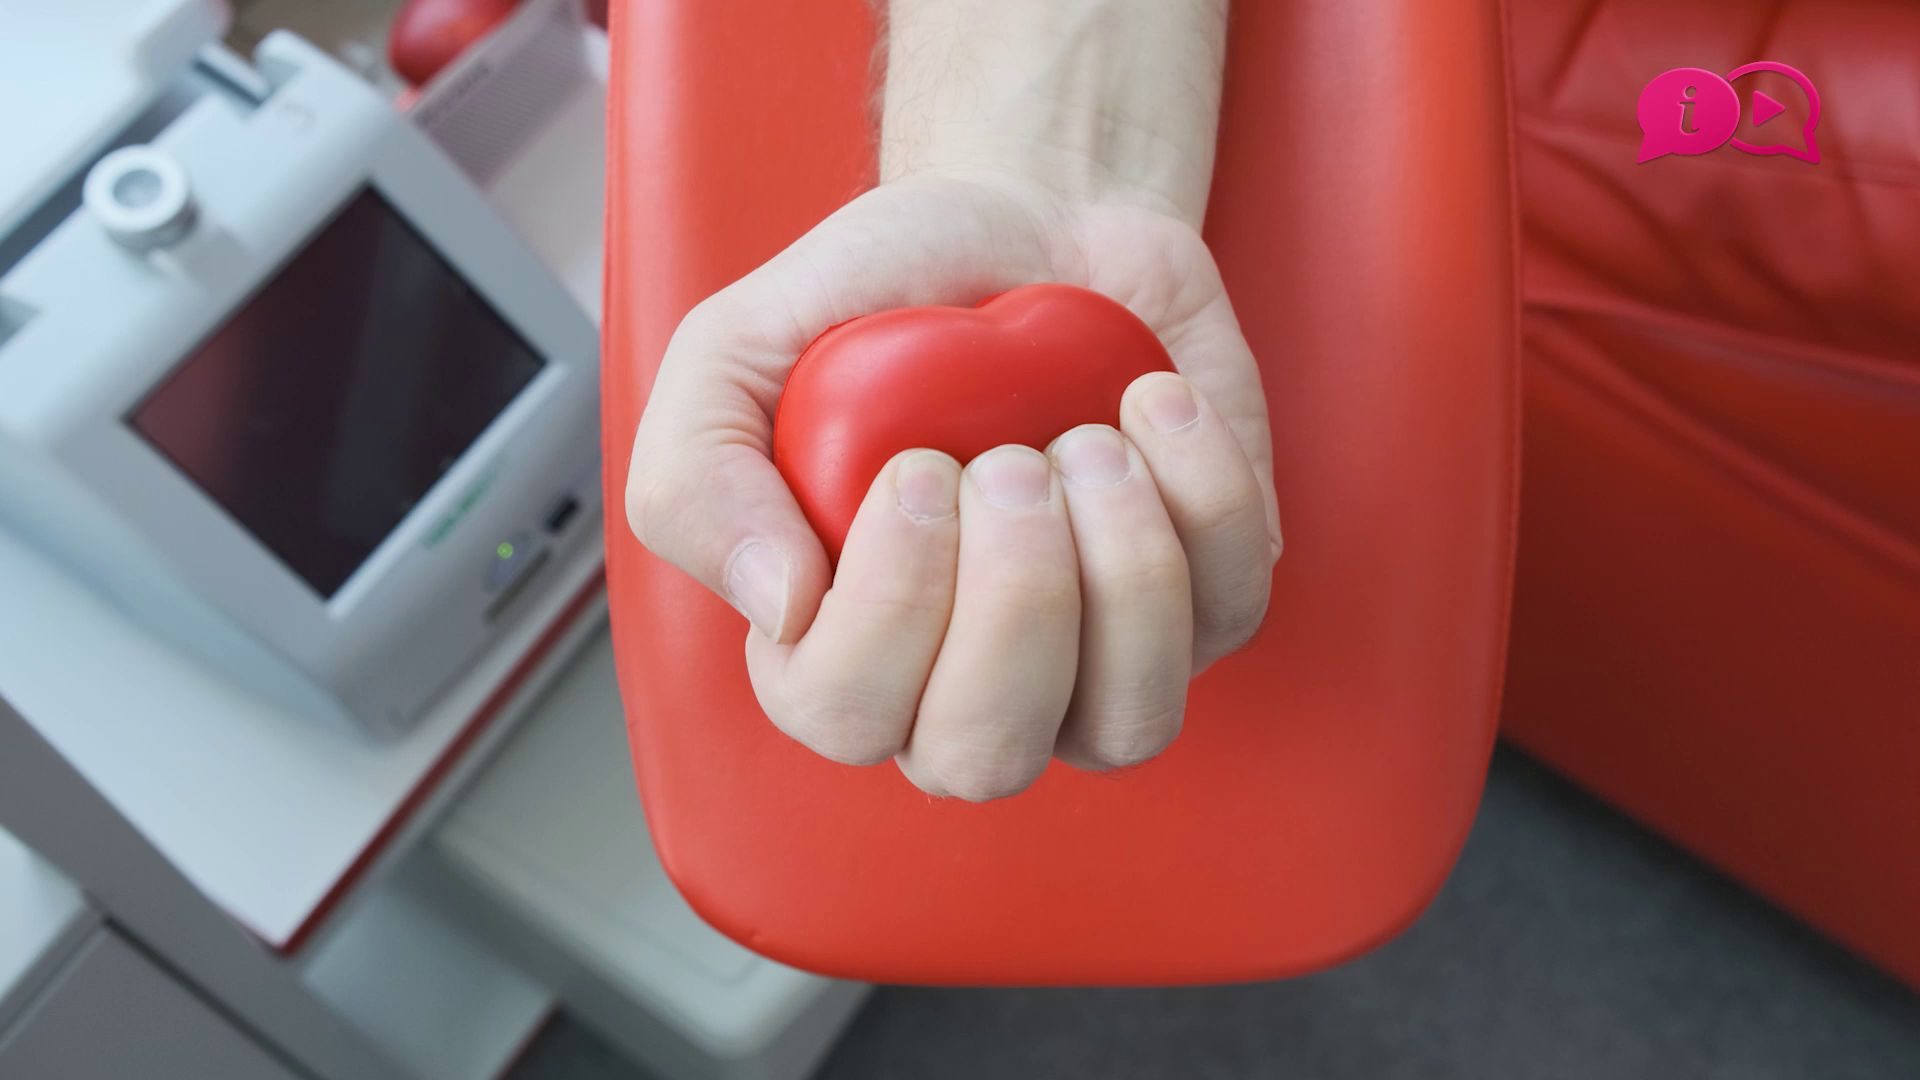 What is the importance of donating blood?